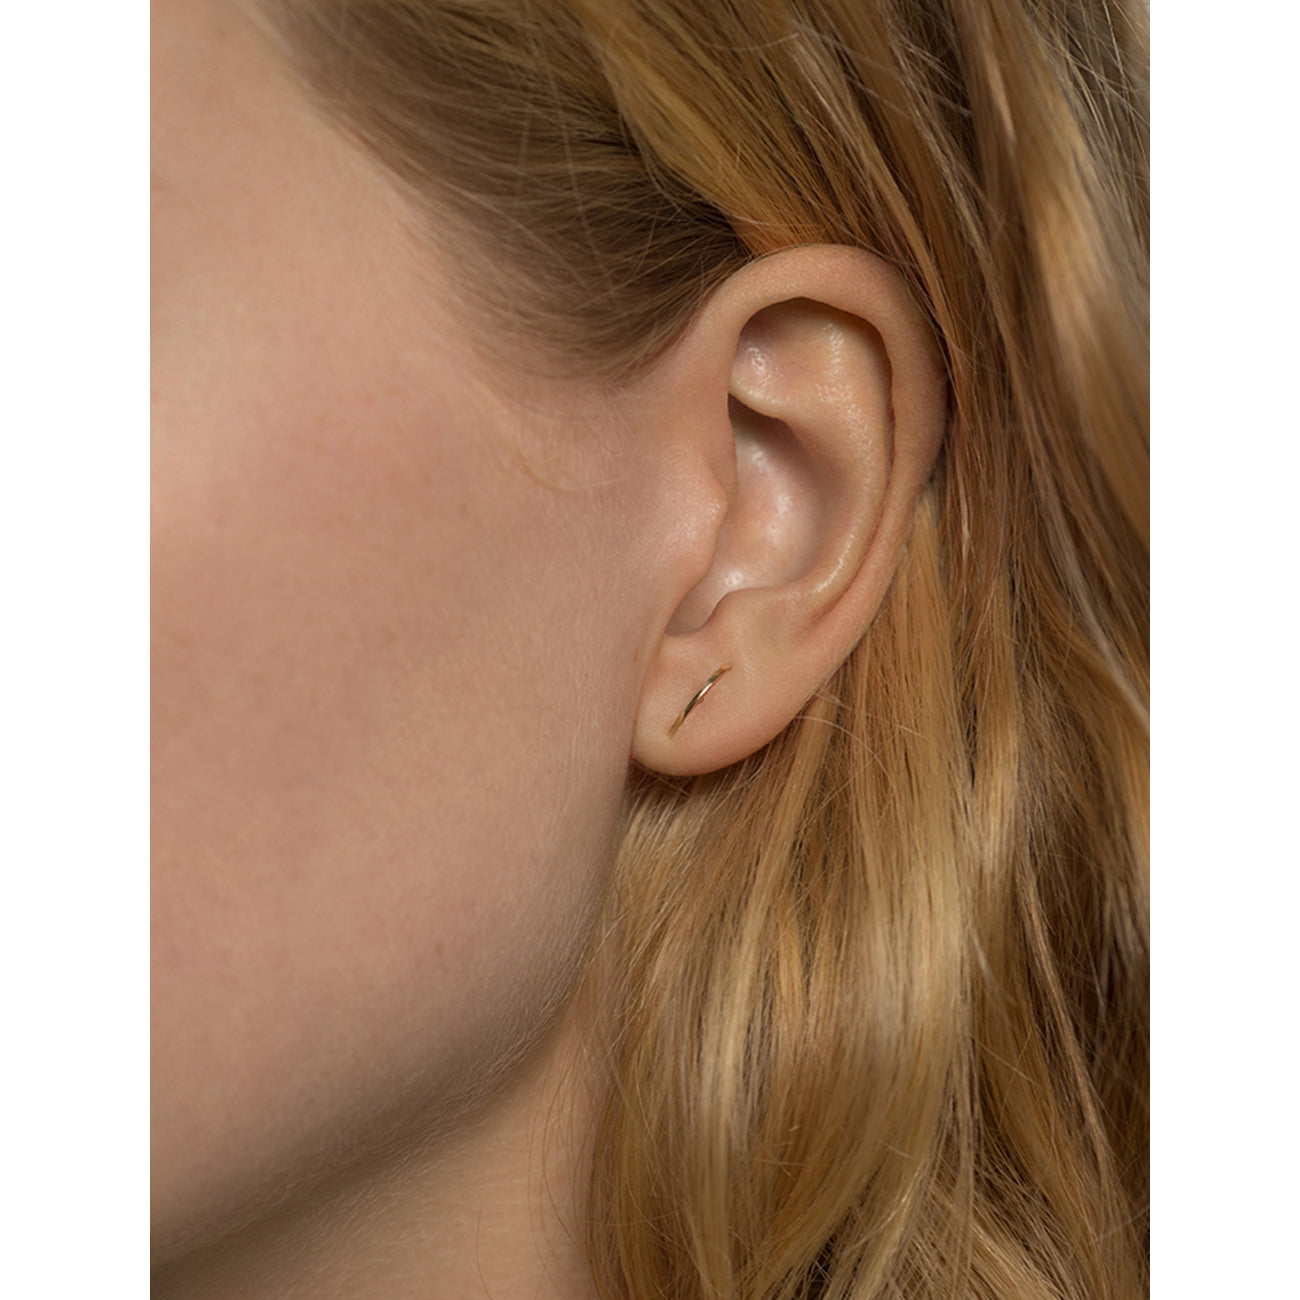 Kathleen Whitaker Stitch Earring in 14k Gold